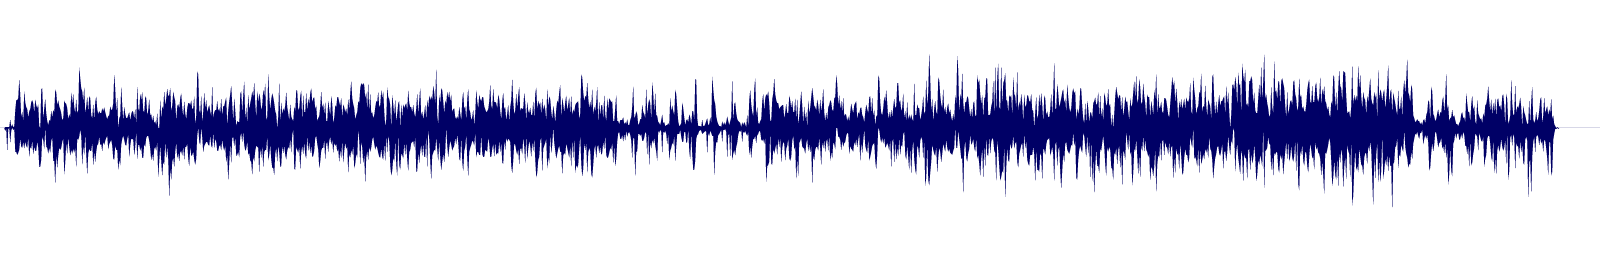 waveform of track #111755